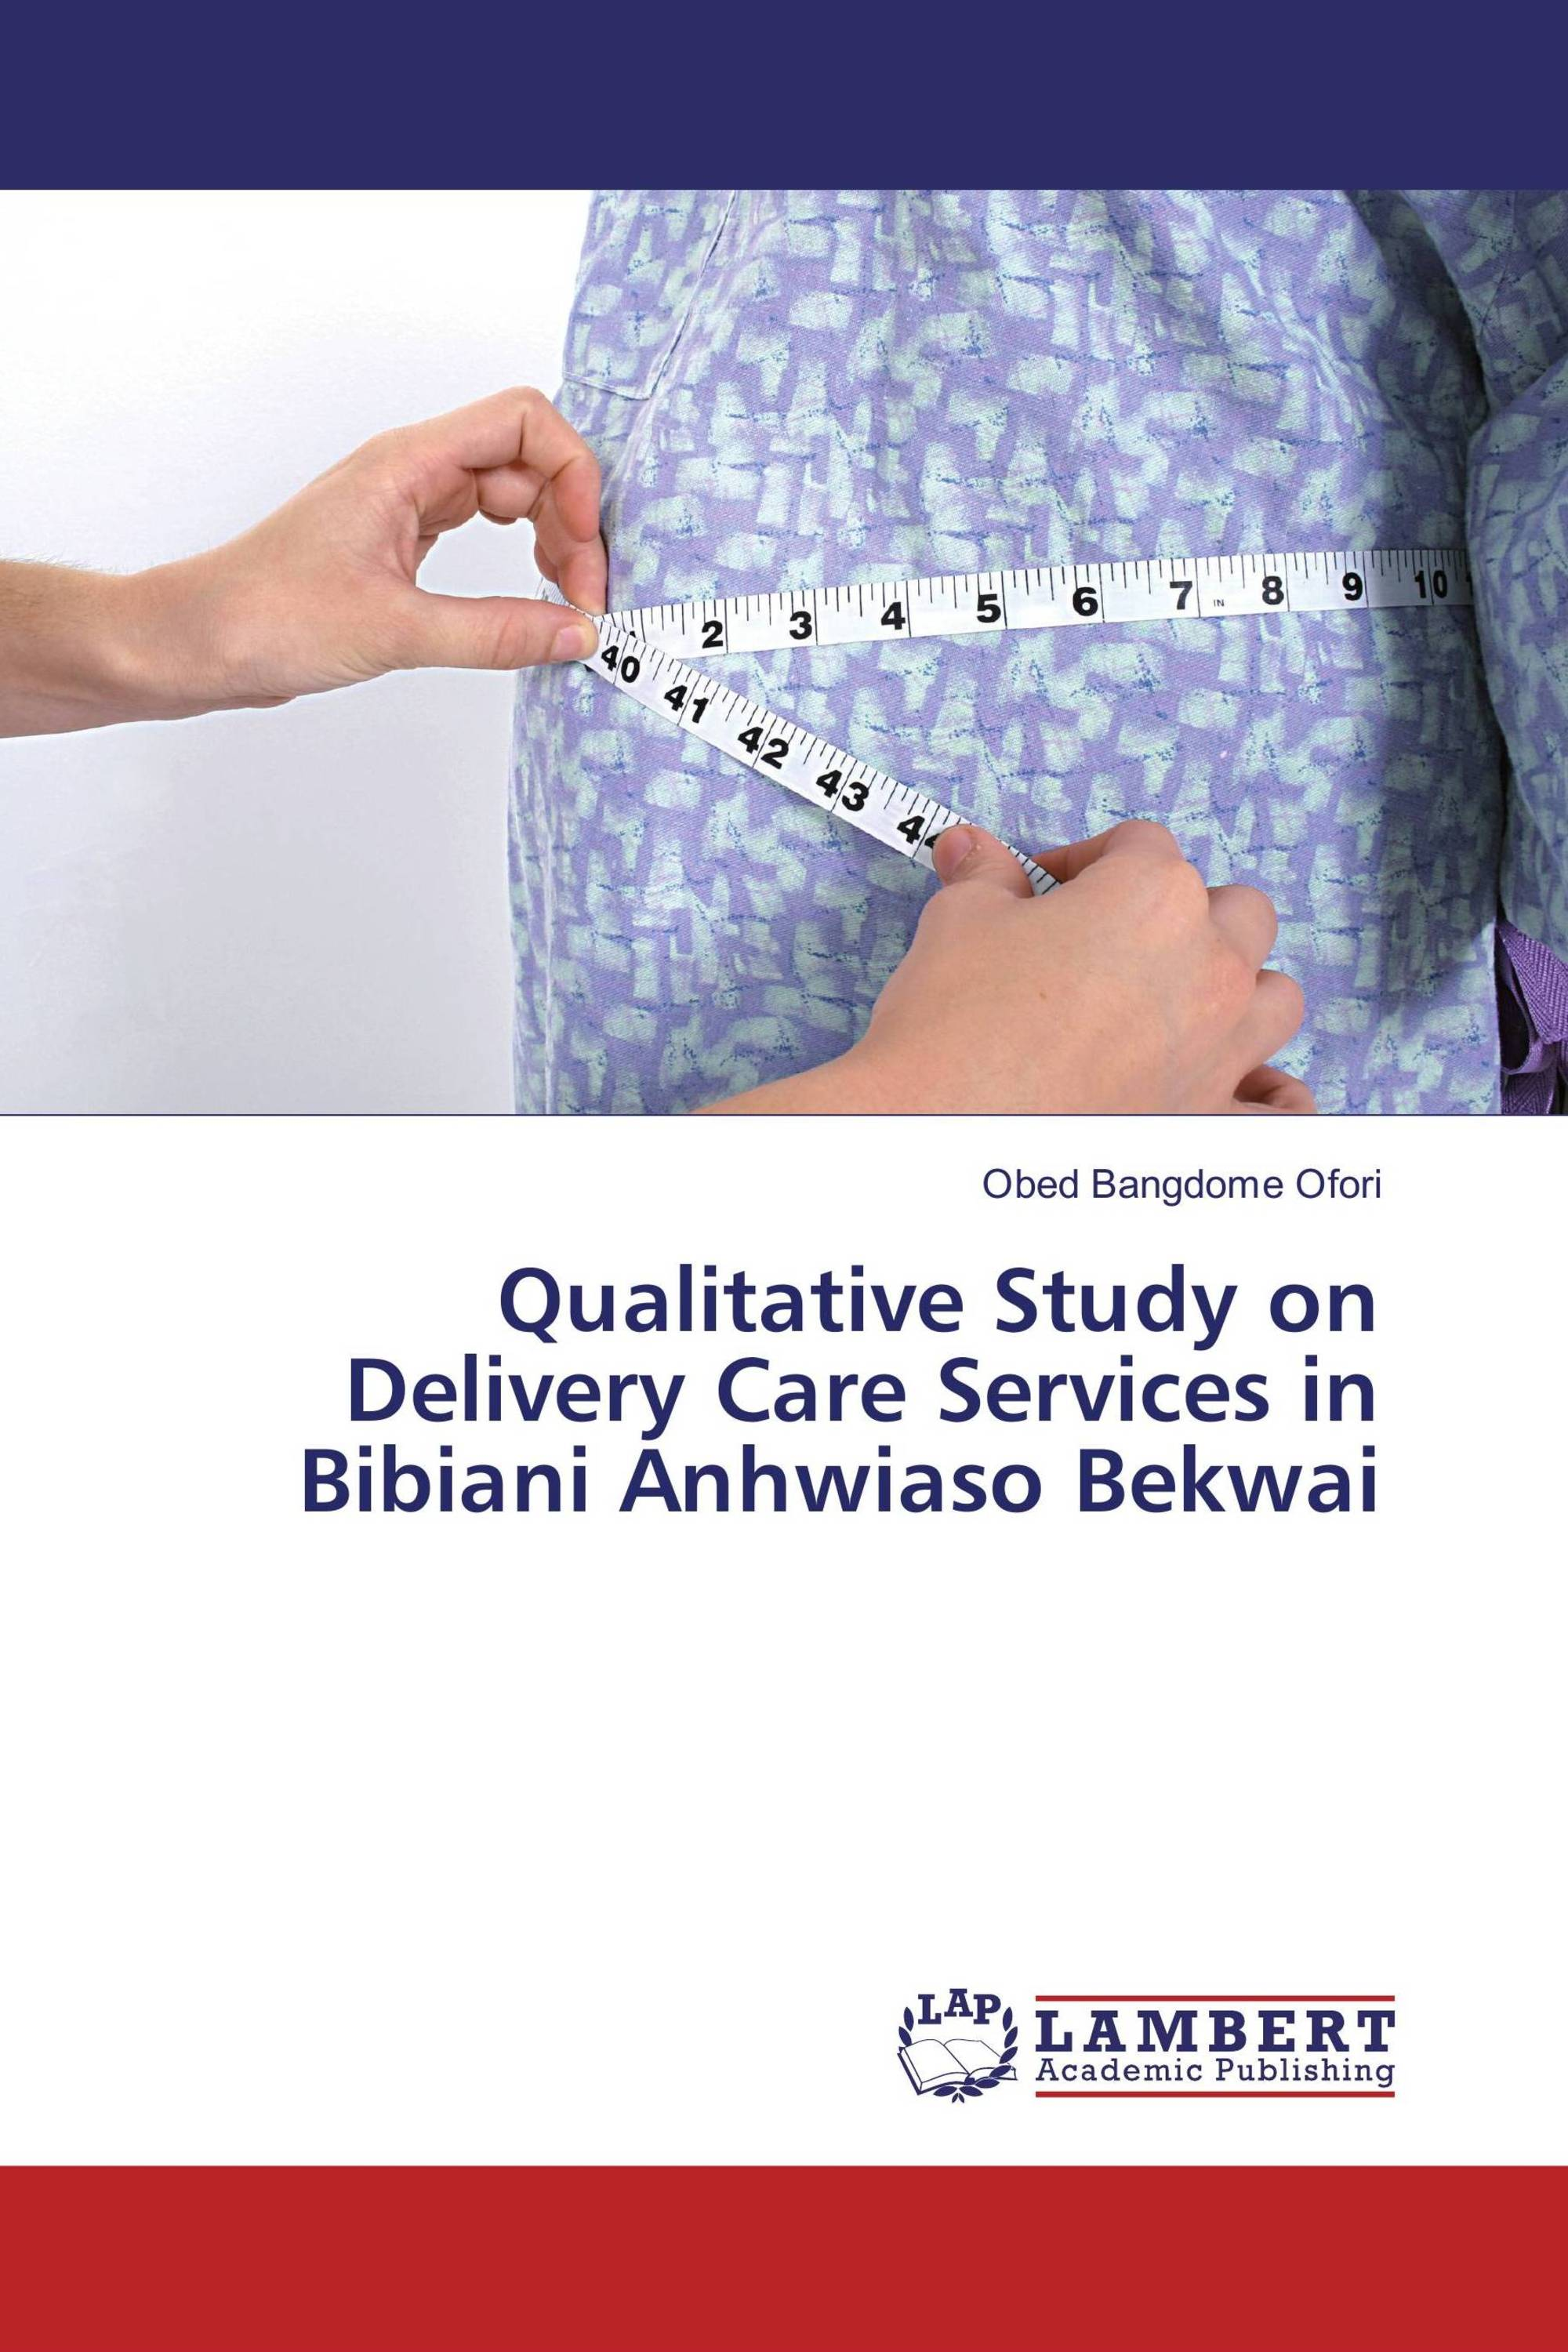 Qualitative Study on Delivery Care Services in Bibiani Anhwiaso Bekwai